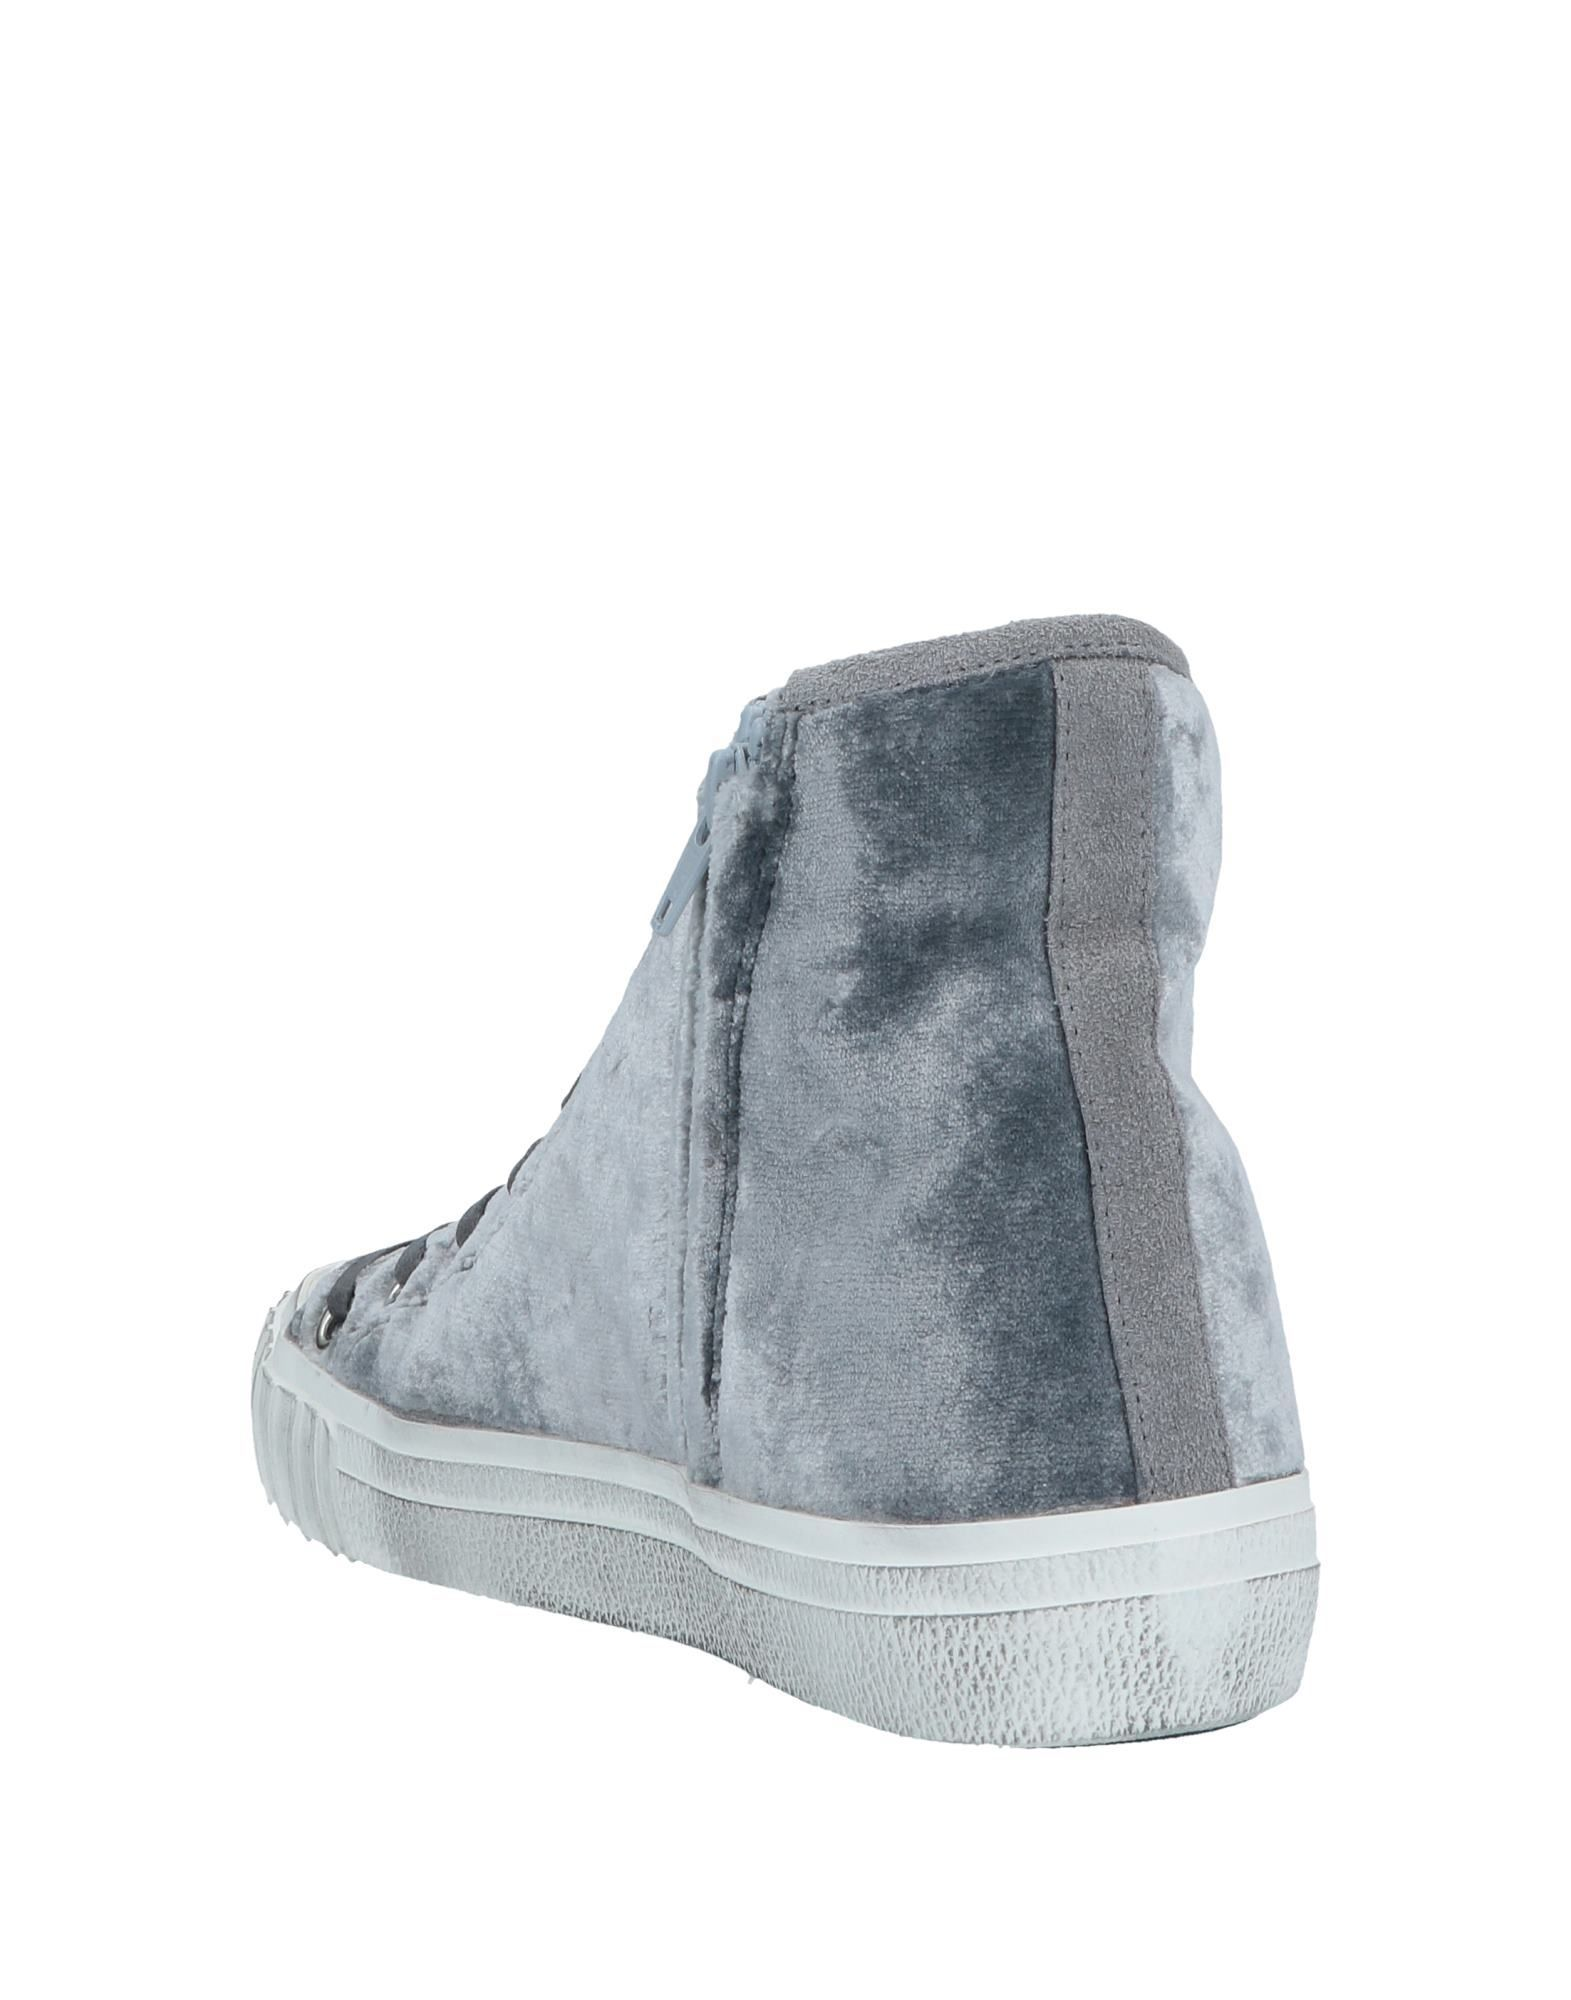 Philippe Model Women's High-Top & Sneakers Grey Textile Fibres